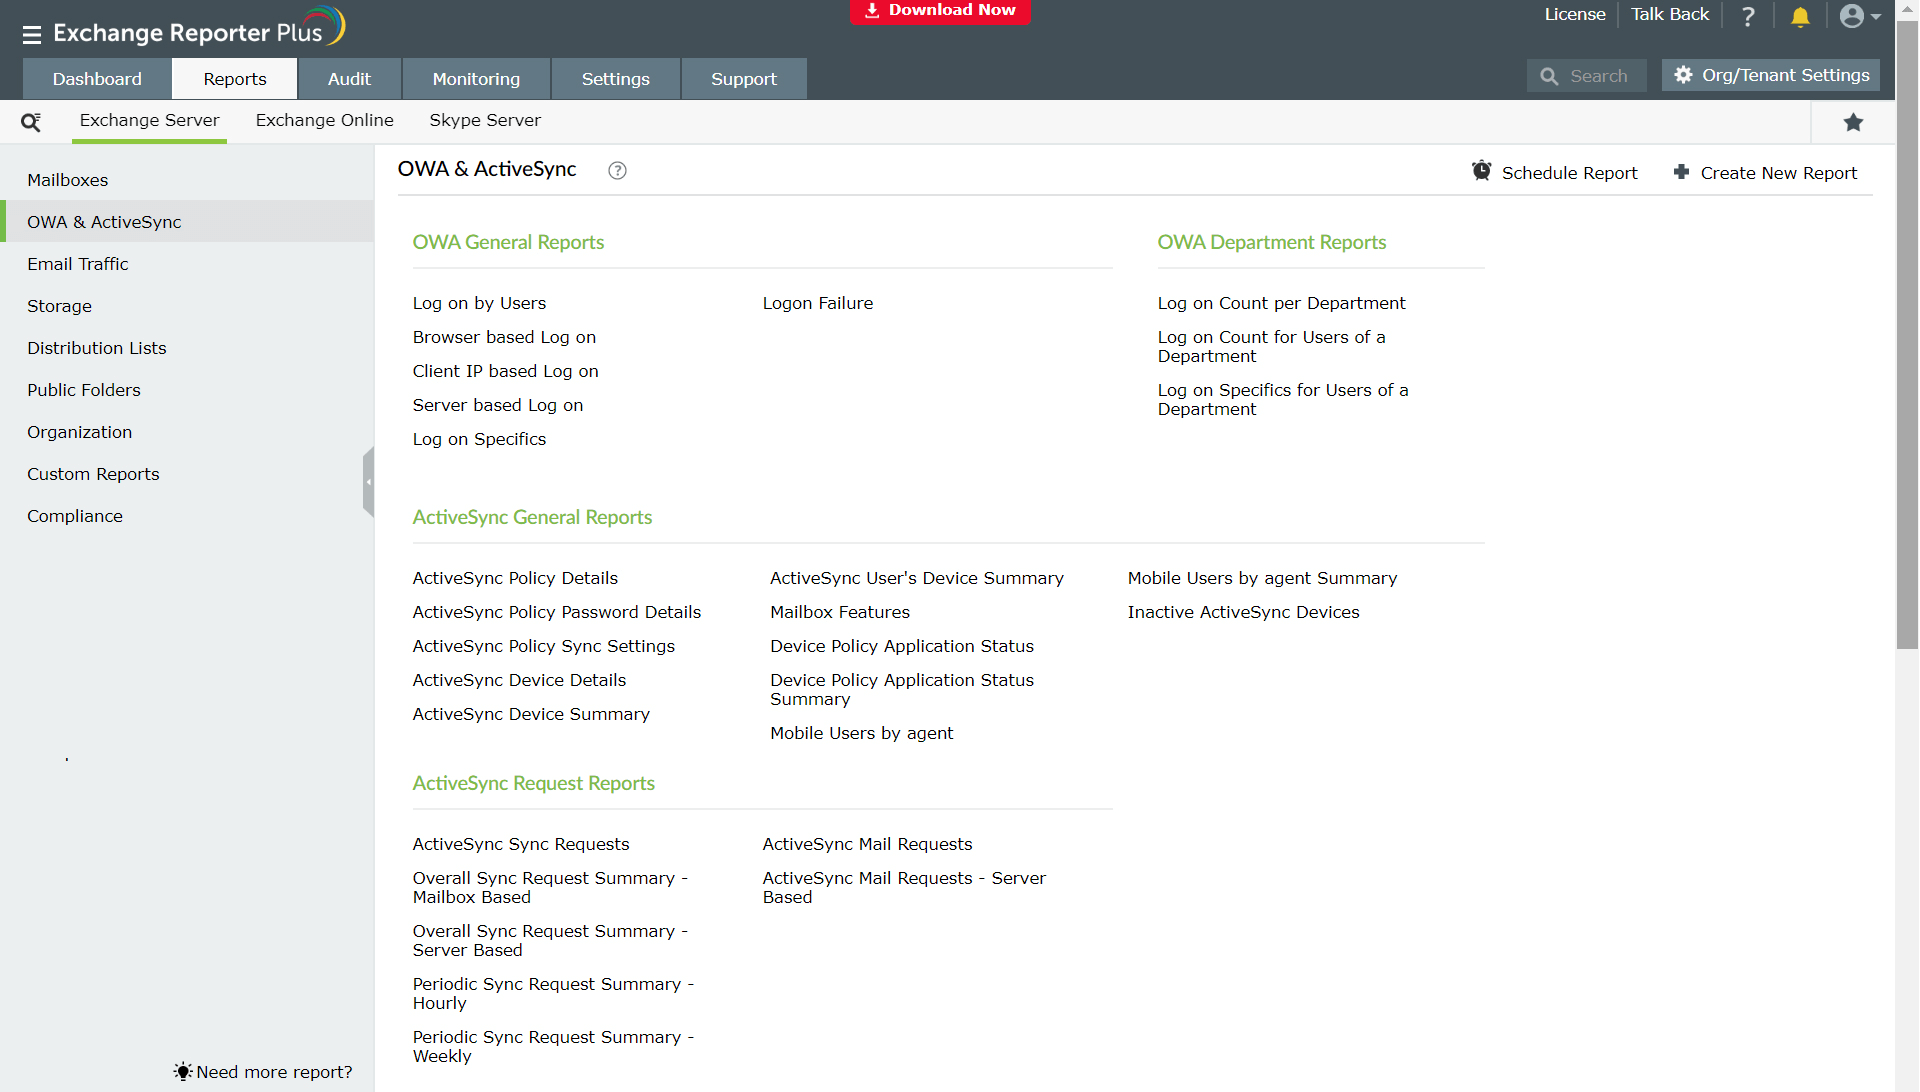 owa-and-activesync-reports